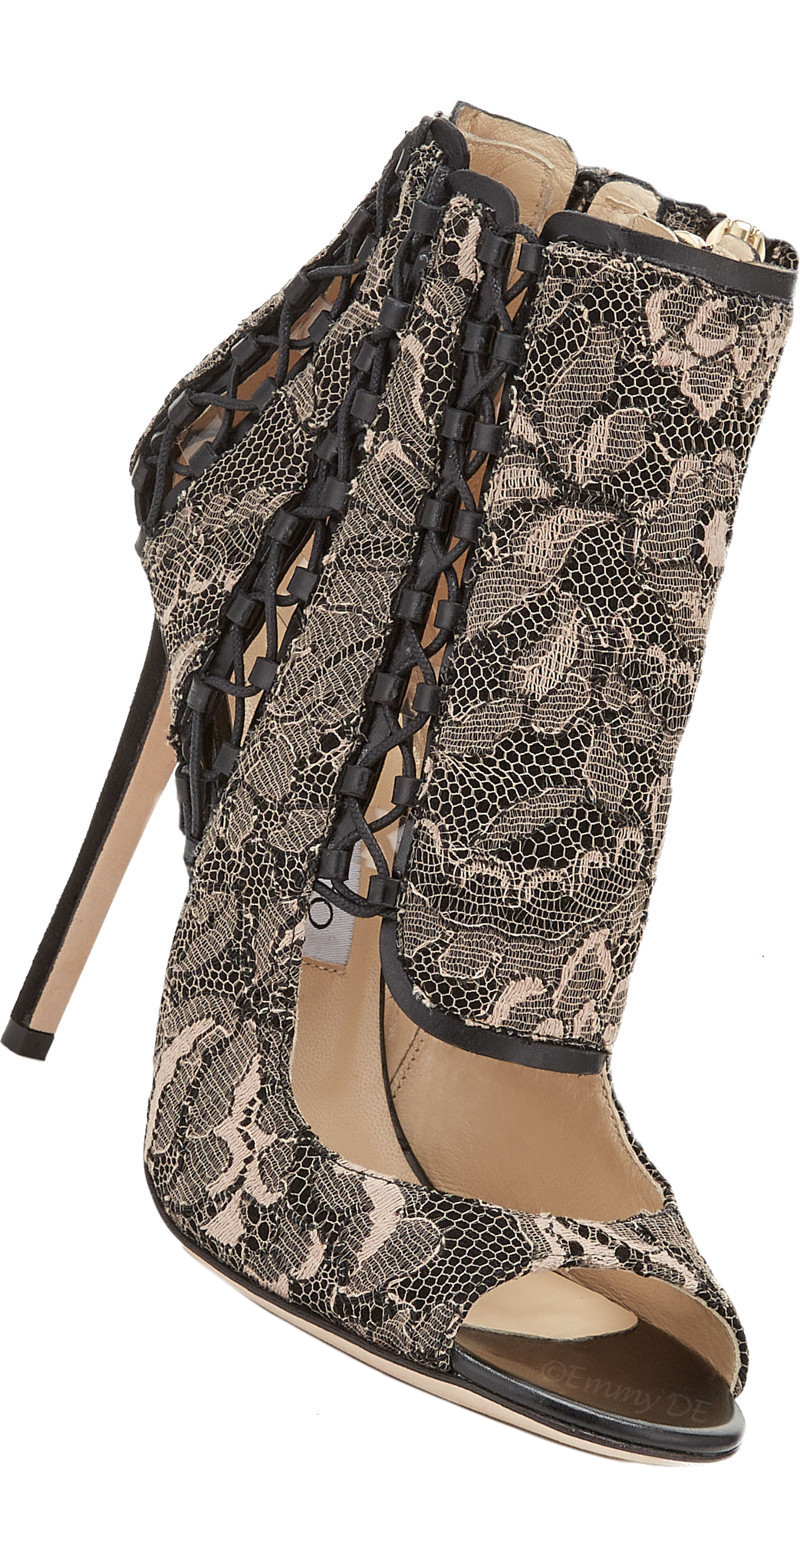 Brilliant Luxury ♦ Jimmy Choo Kia Cutout Lace Peep Toe Bootie